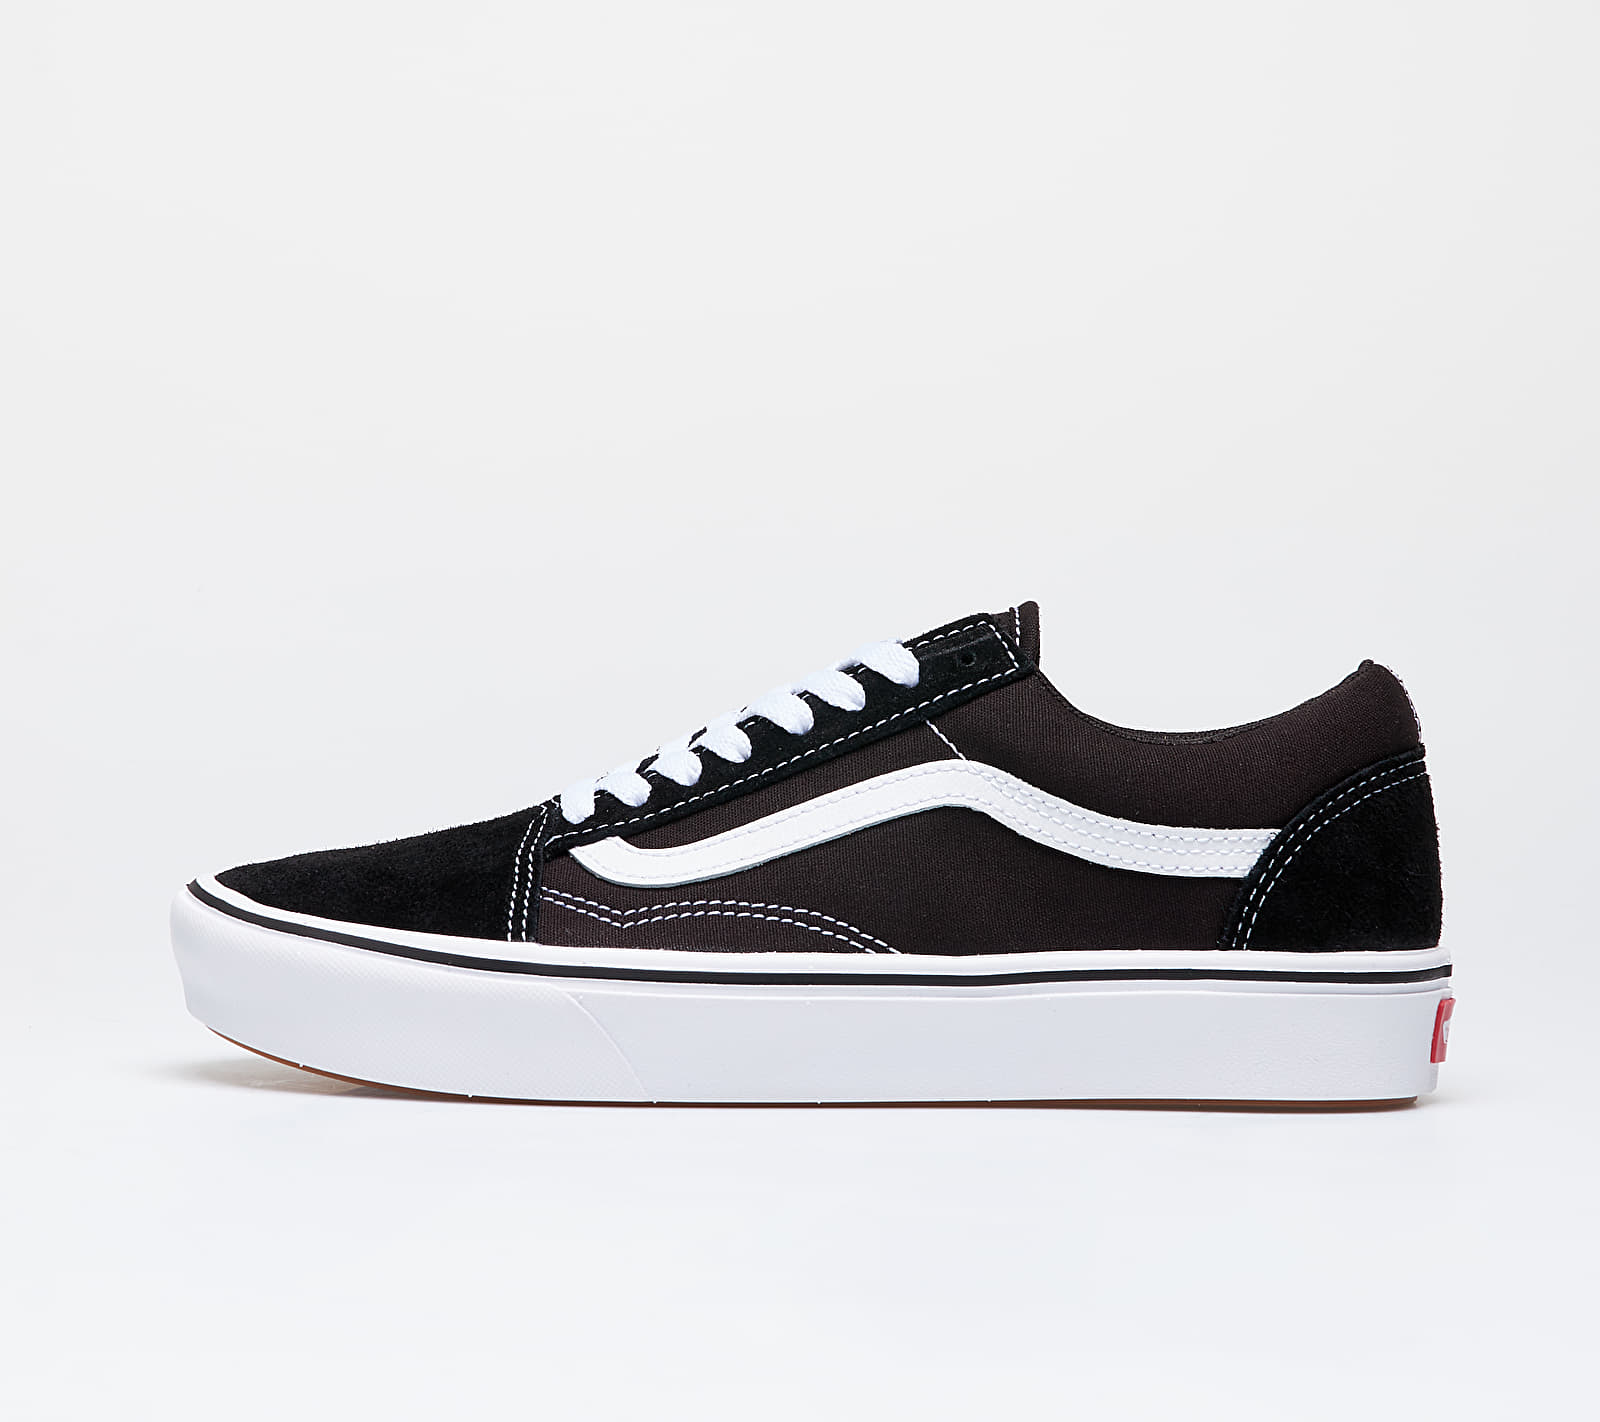 Vans ComfyCush Old Skool (Classic) Black/ True White EUR 34.5